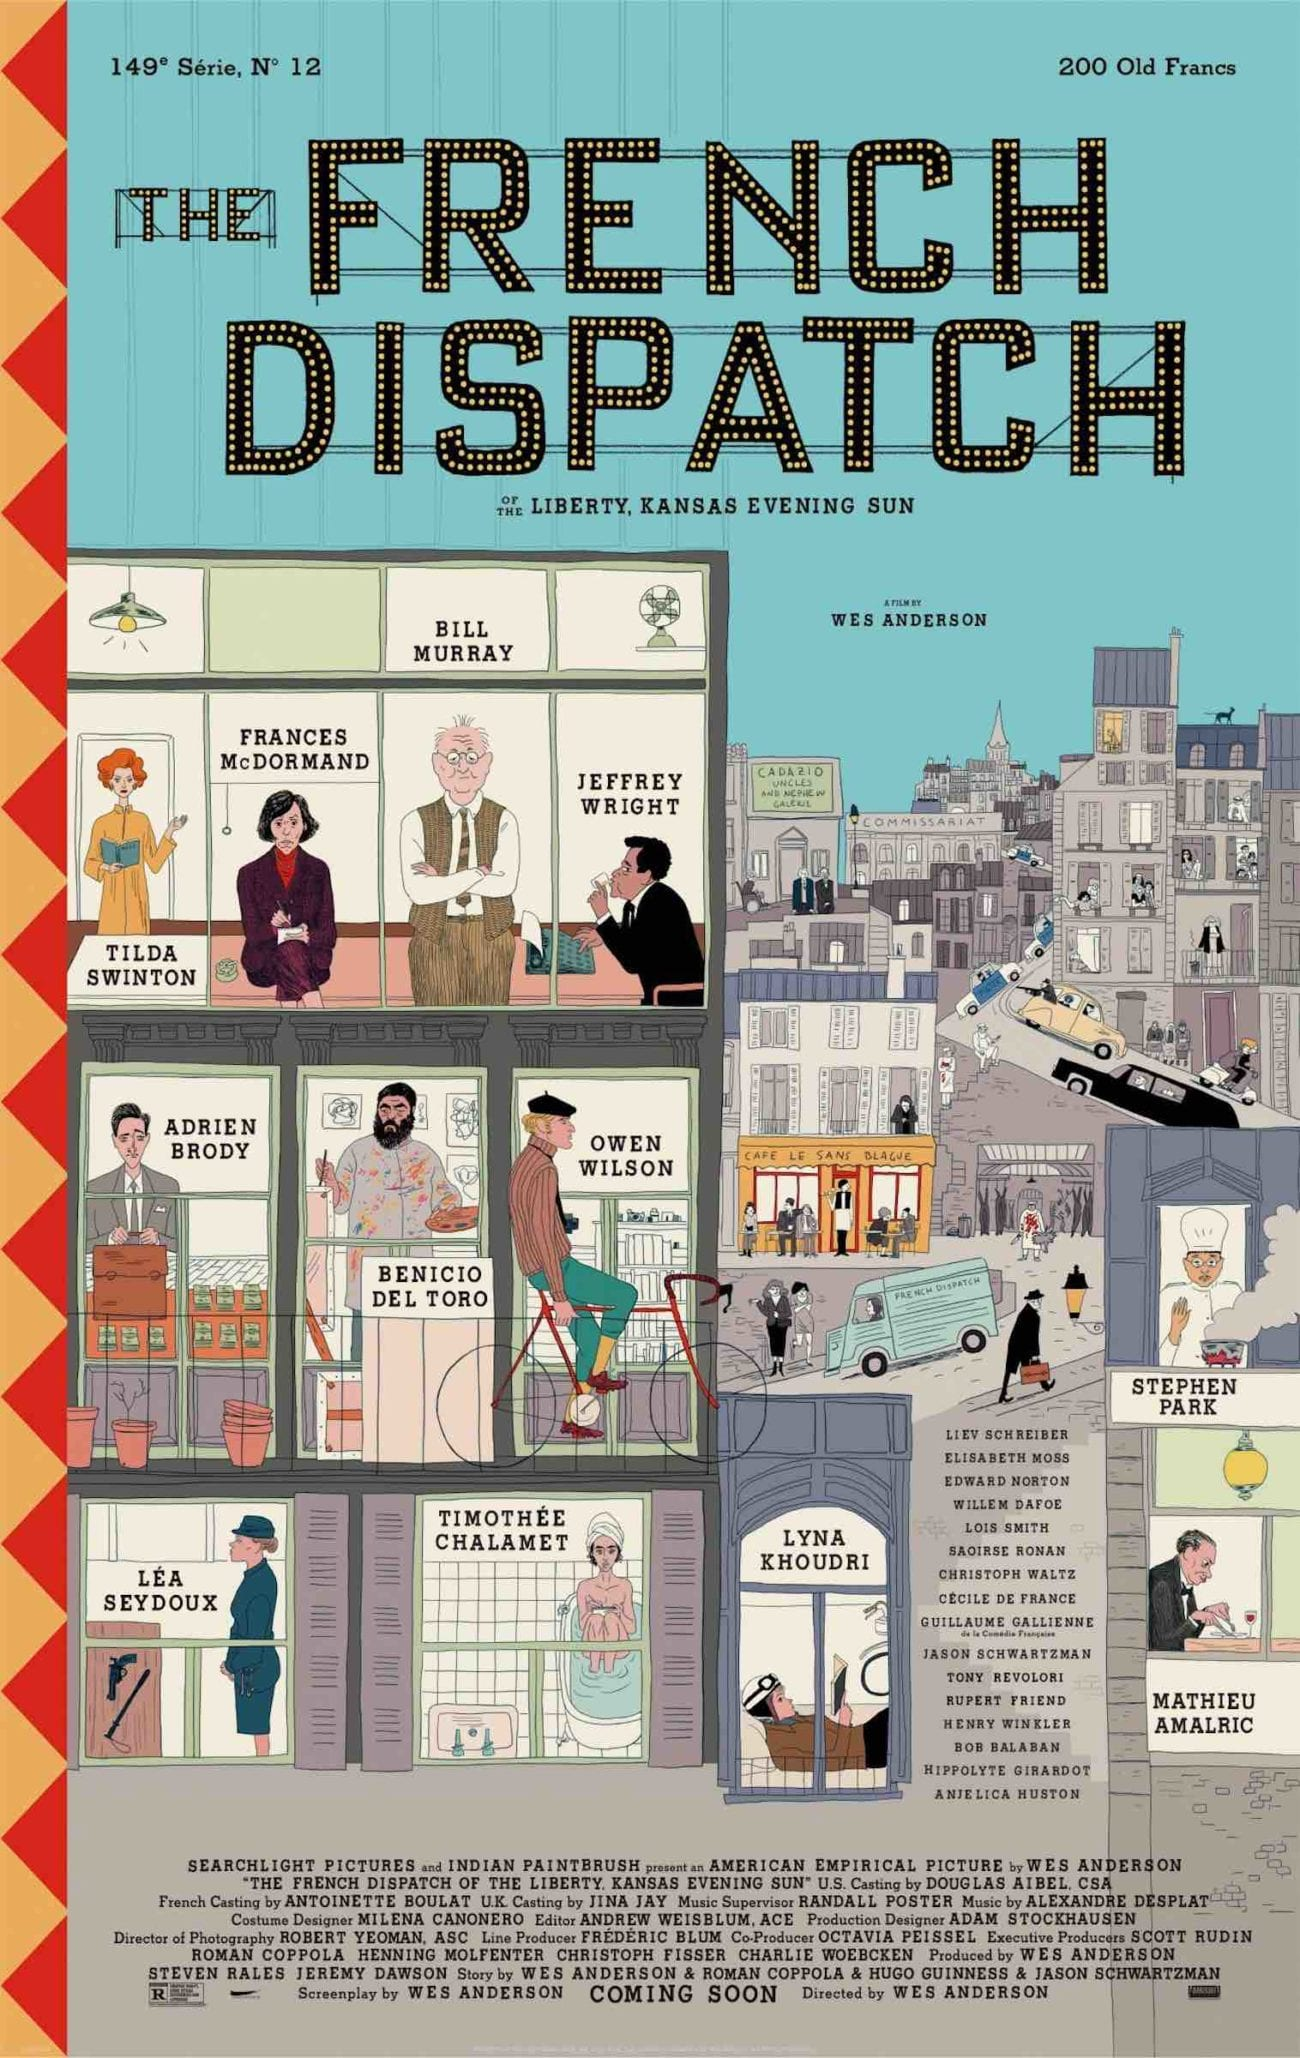 Wes Anderson may have outdone himself once again based on the first trailer for his new film, 'The French Dispatch'. Here's what we know.